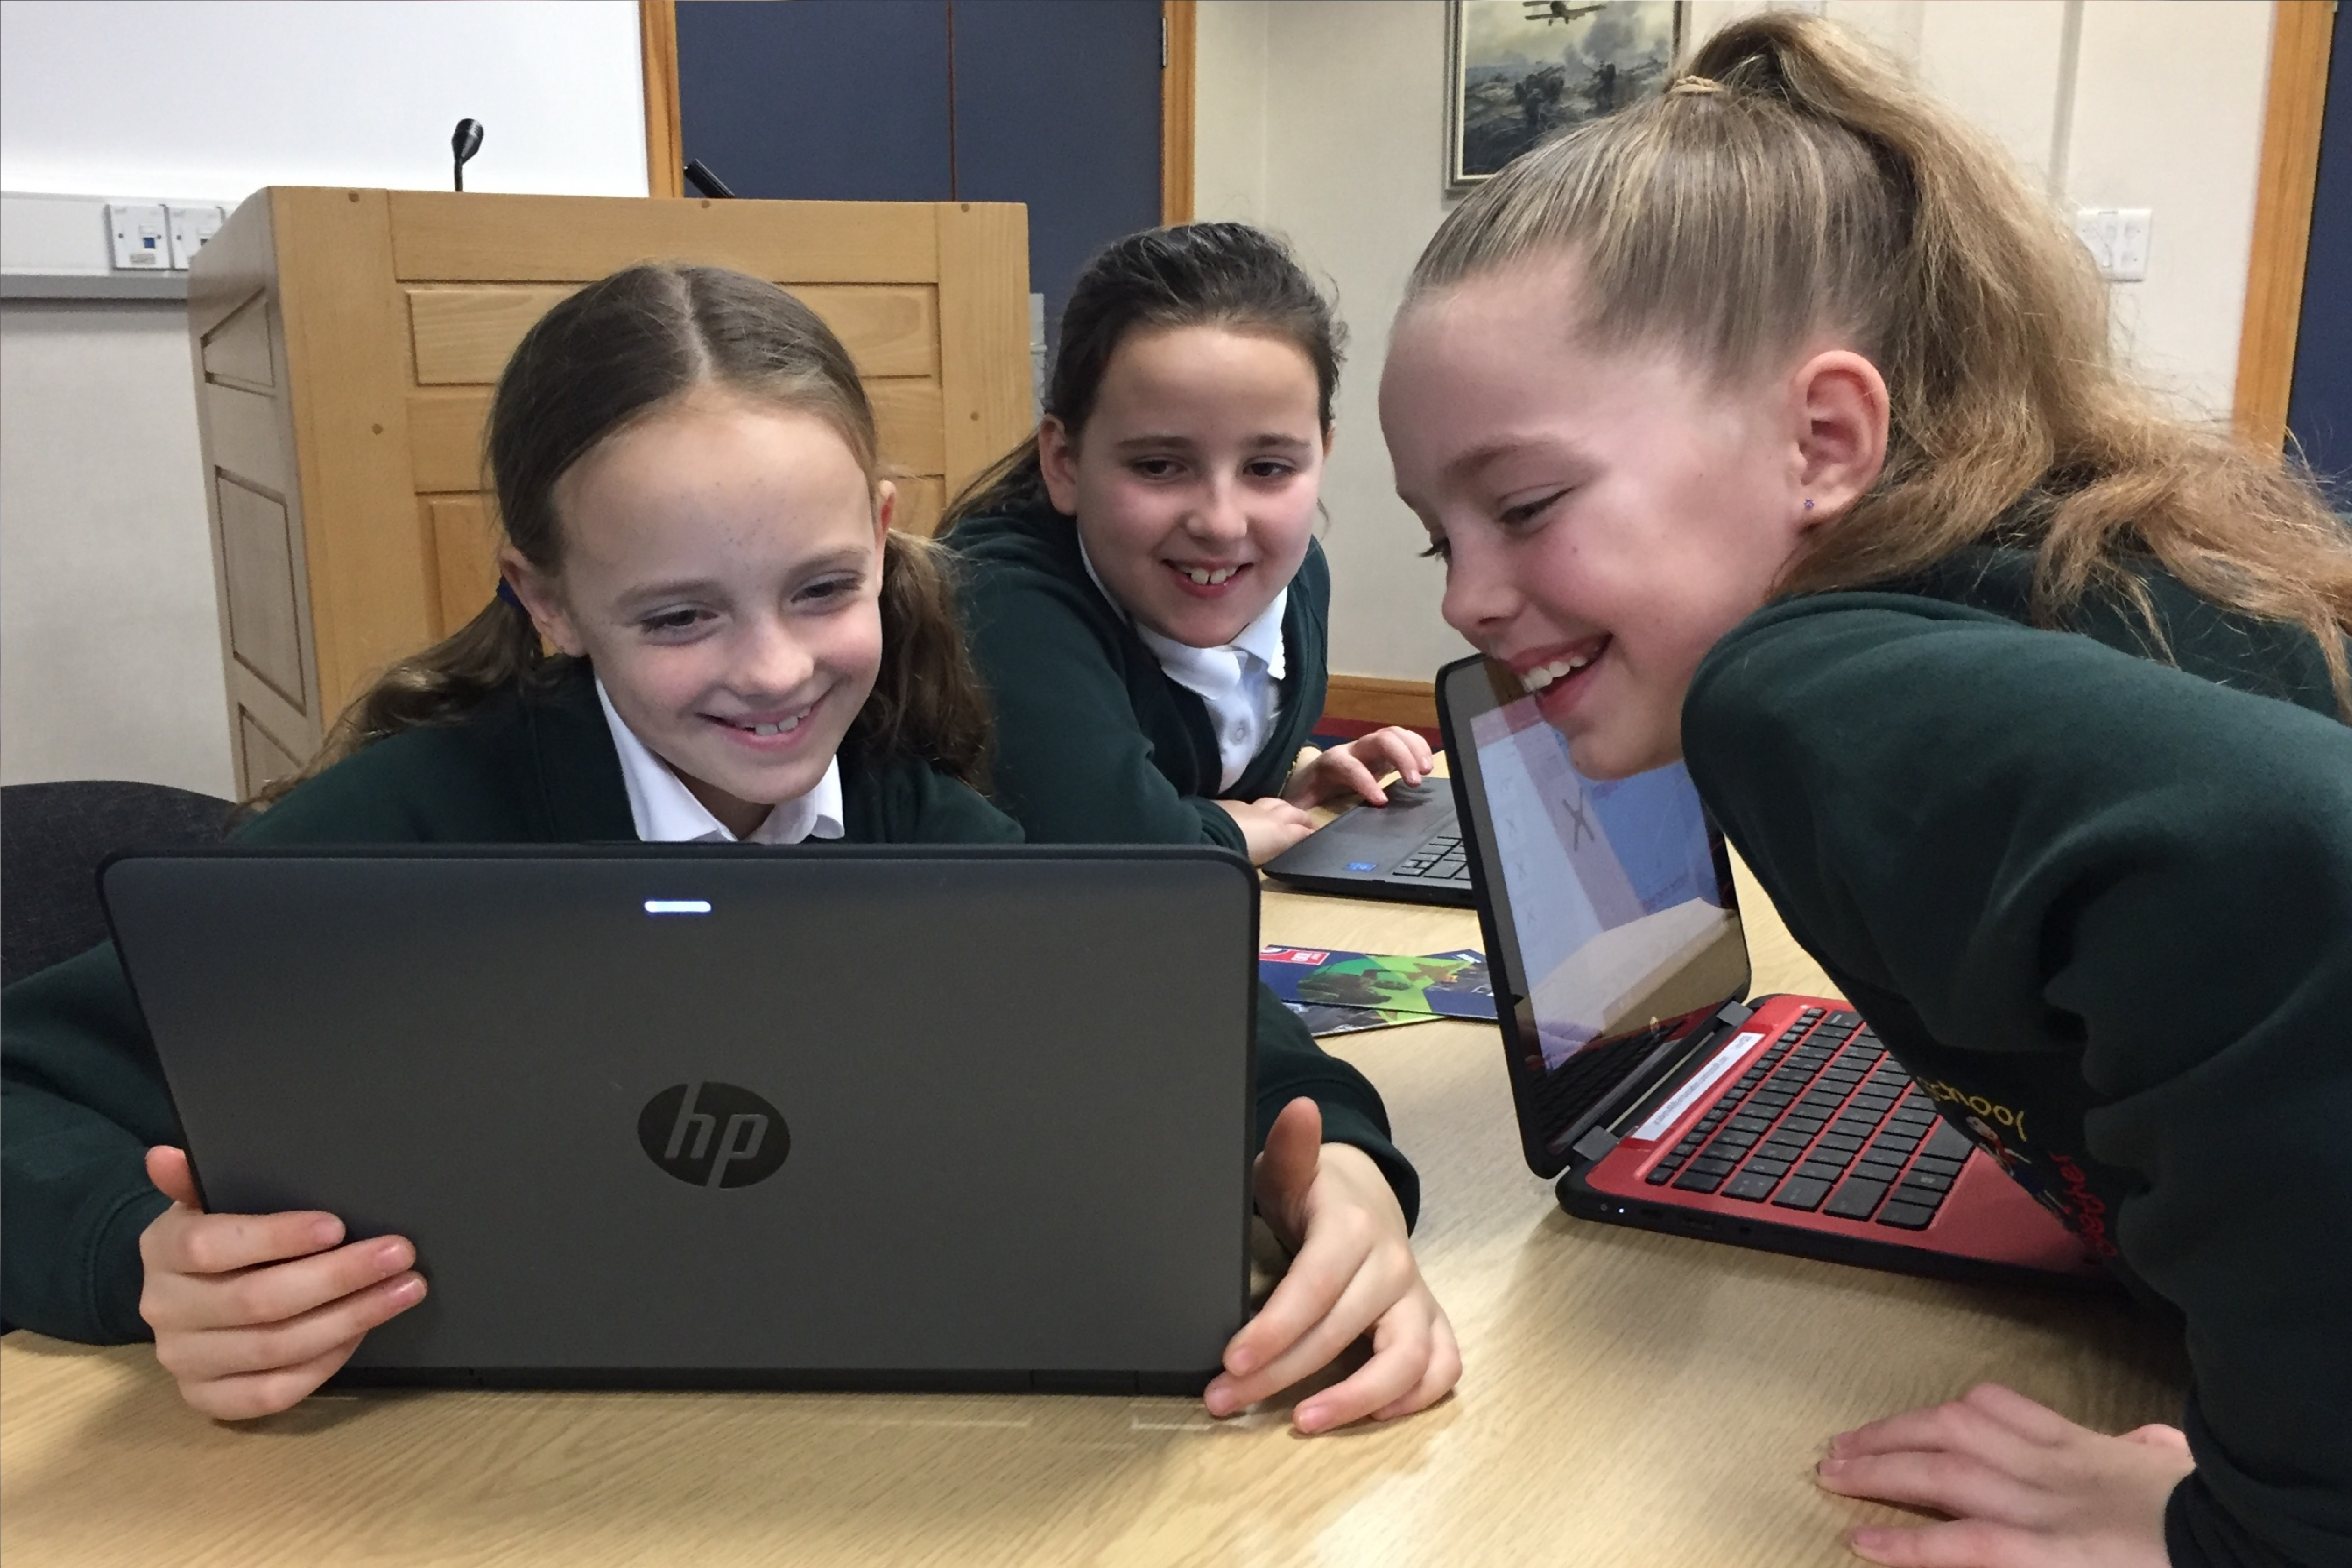 A photograph of three school children completing work on a HP device